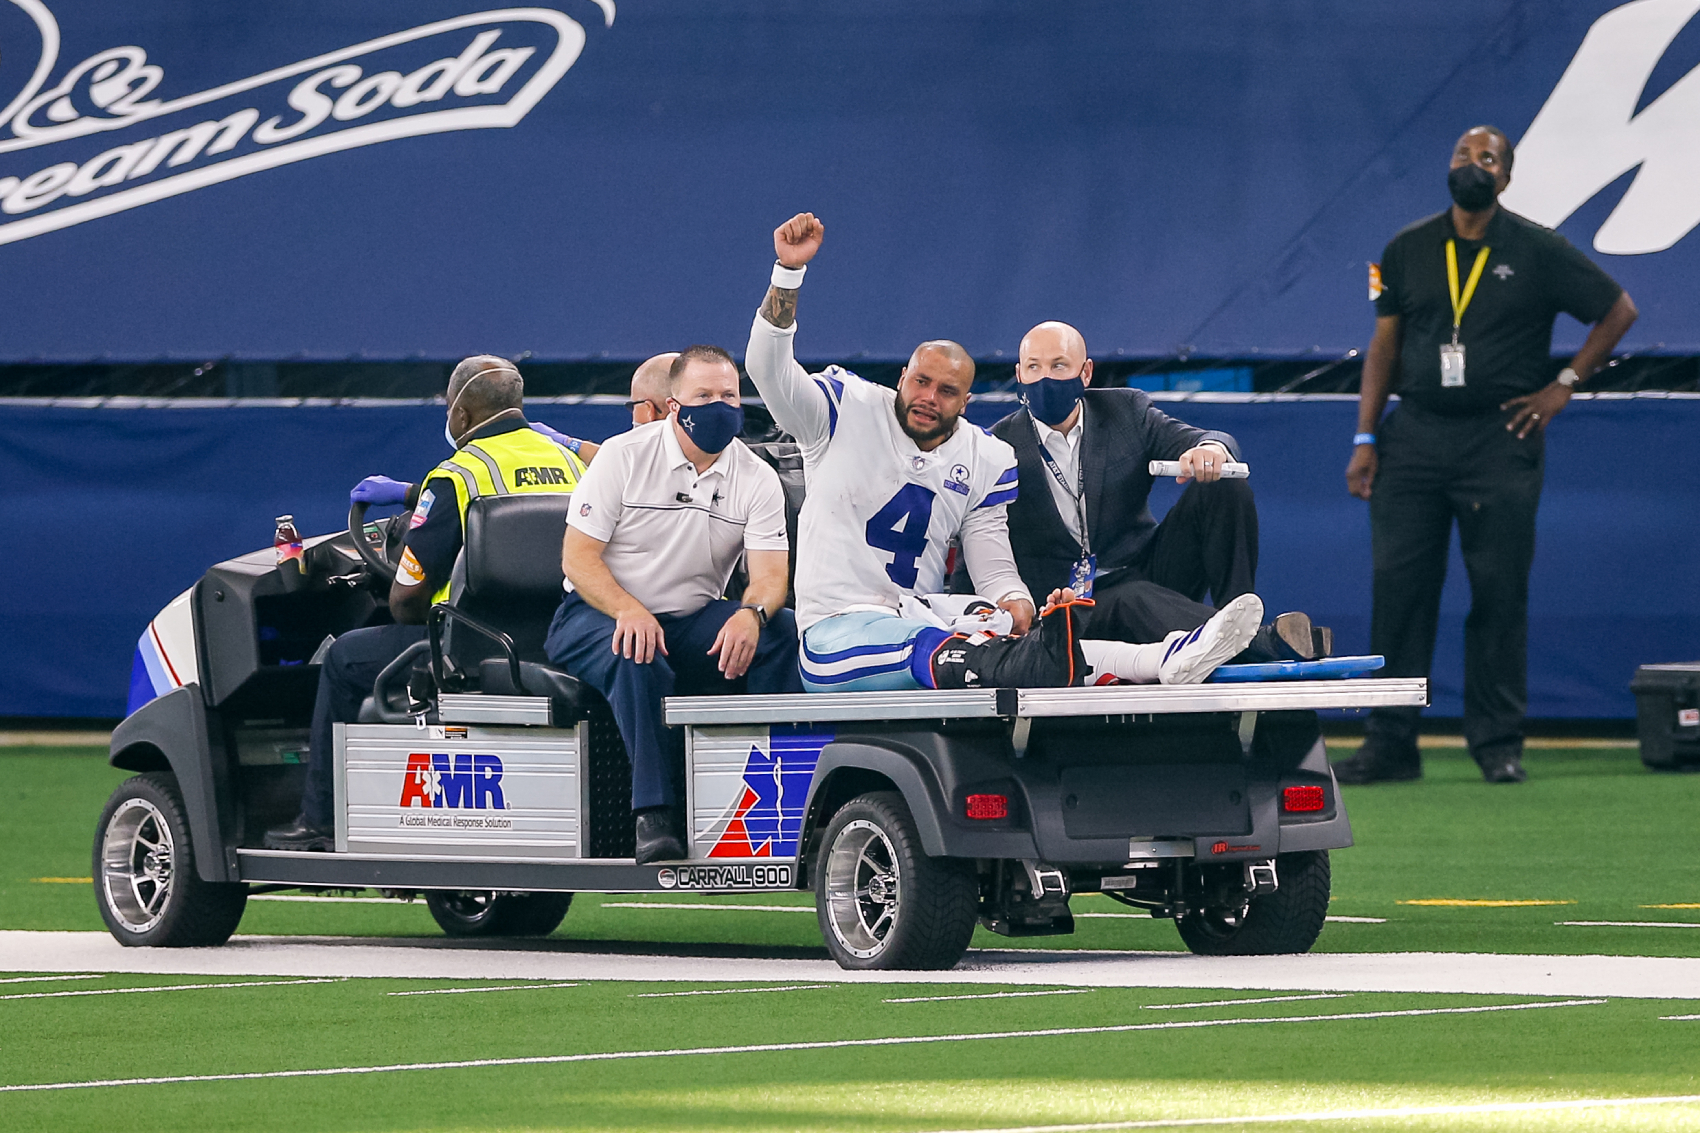 Dallas Cowboys QB Dak Prescott recently suffered a gruesome injury. He has since received a compassionate offer from an NBA star.